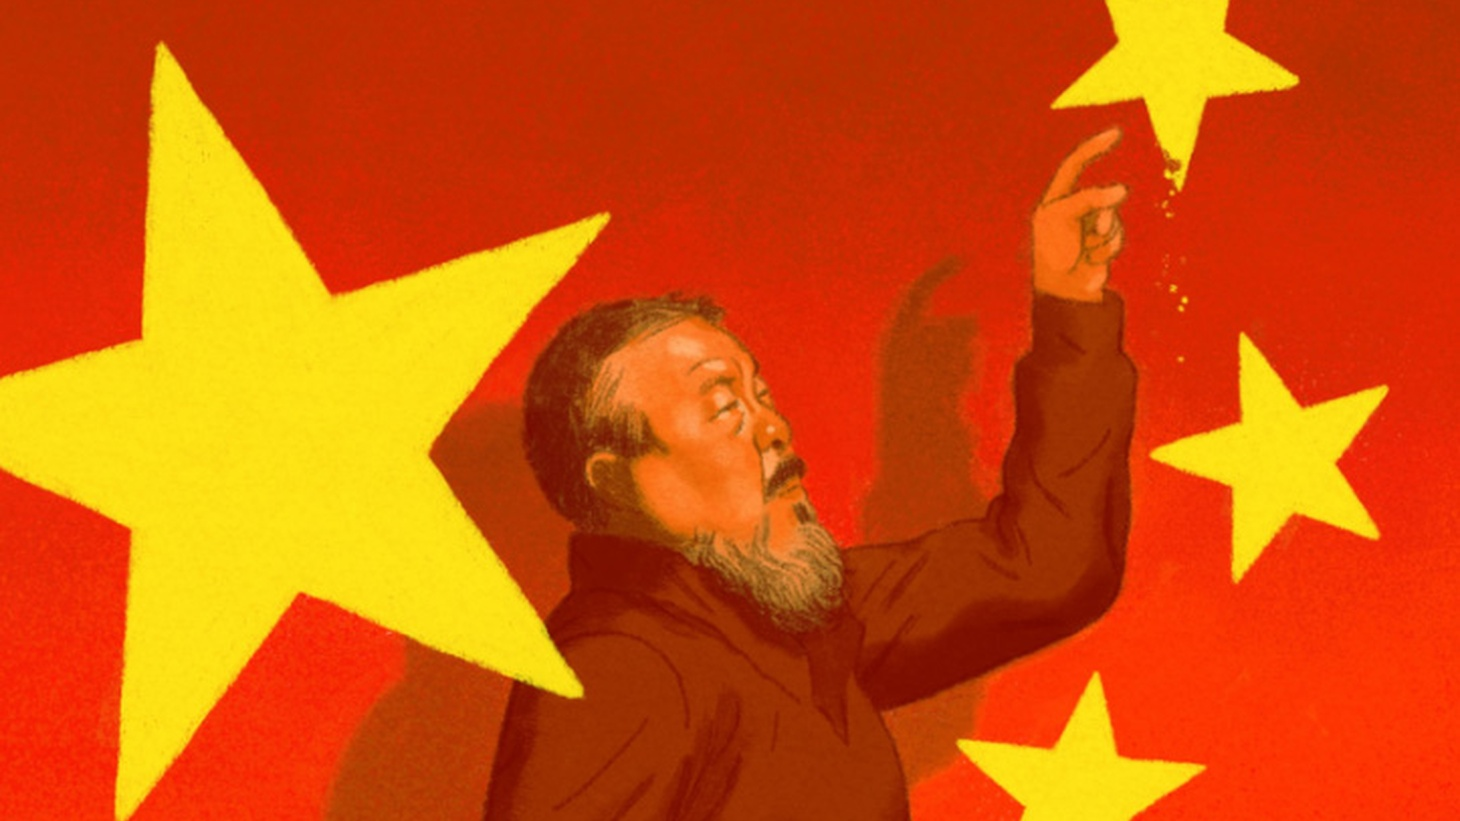 The Chinese artist Ai Weiwei explains why Donald Trump's Tweets about other countries may be a blessing in disguise.